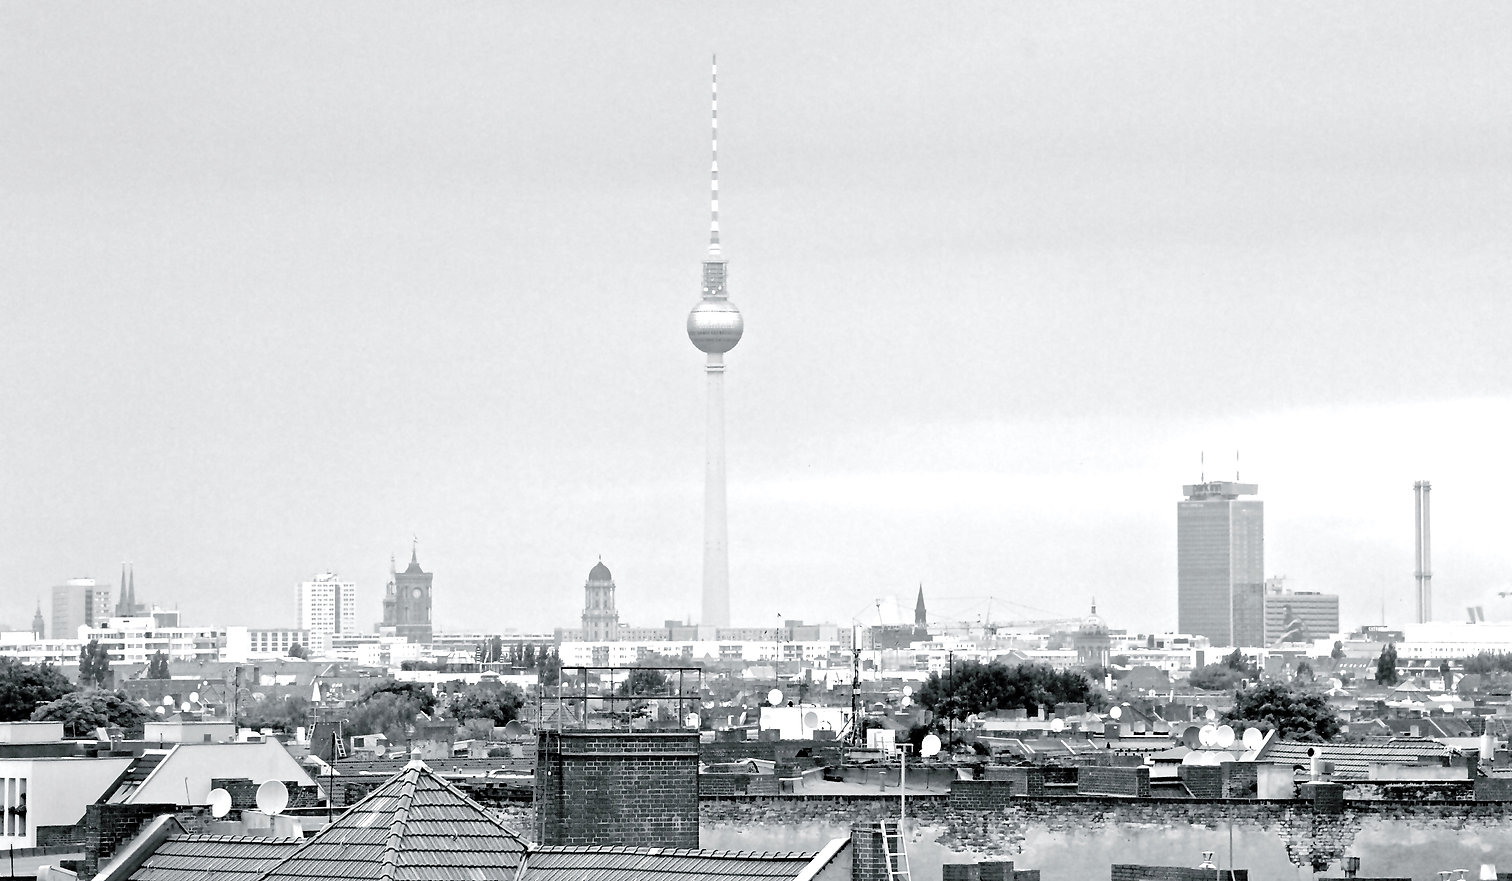 Berlin, Fernsehturm, Streetphotography, TV-Tower, Alex, Vogelperspektive, Kreuzberg, Black and White Photography, B/W